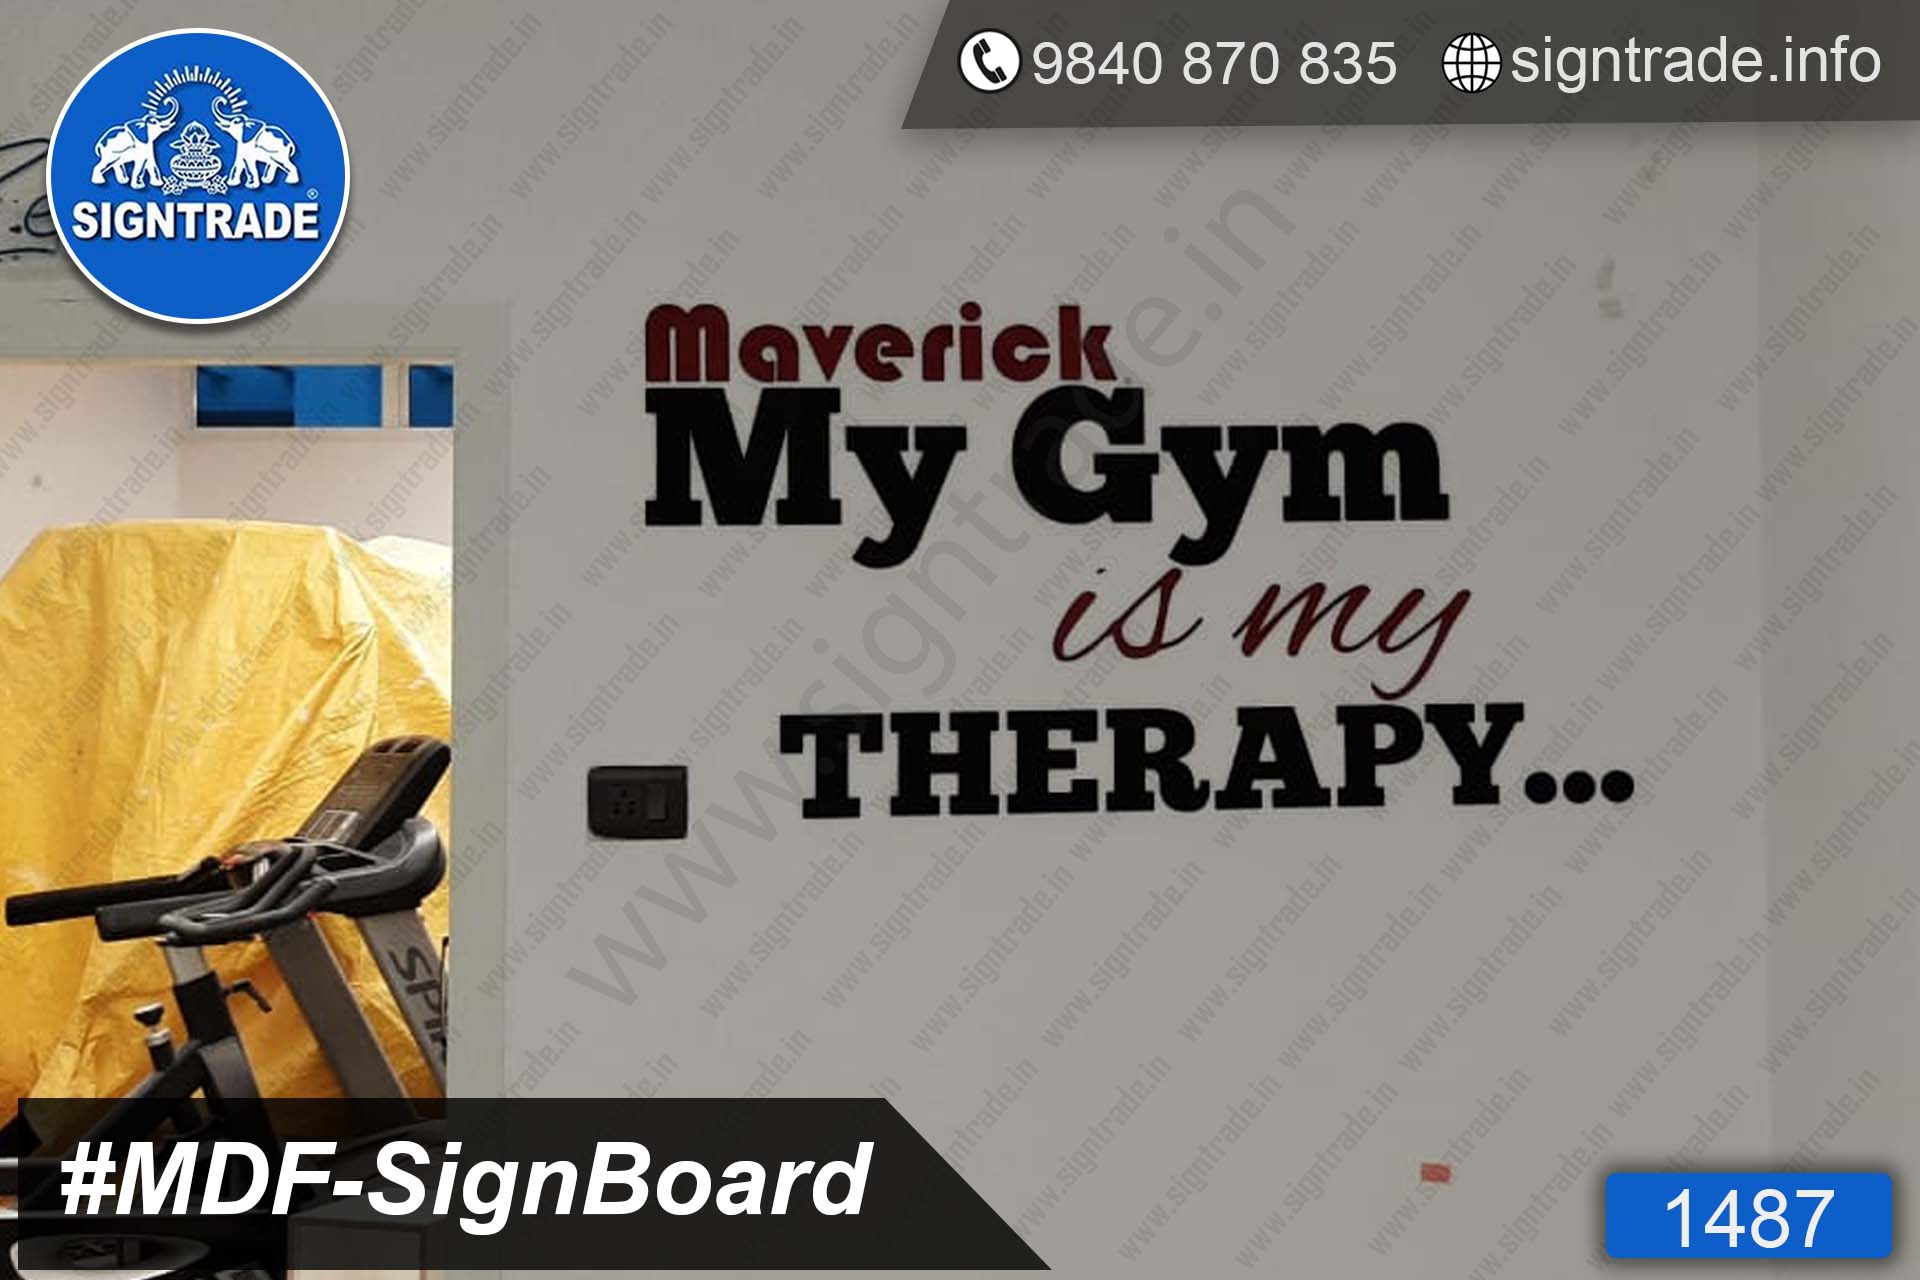 MDF Letter Board, MDF Sign Board - SIGNTRADE - Laser Cutting Service in Chennai